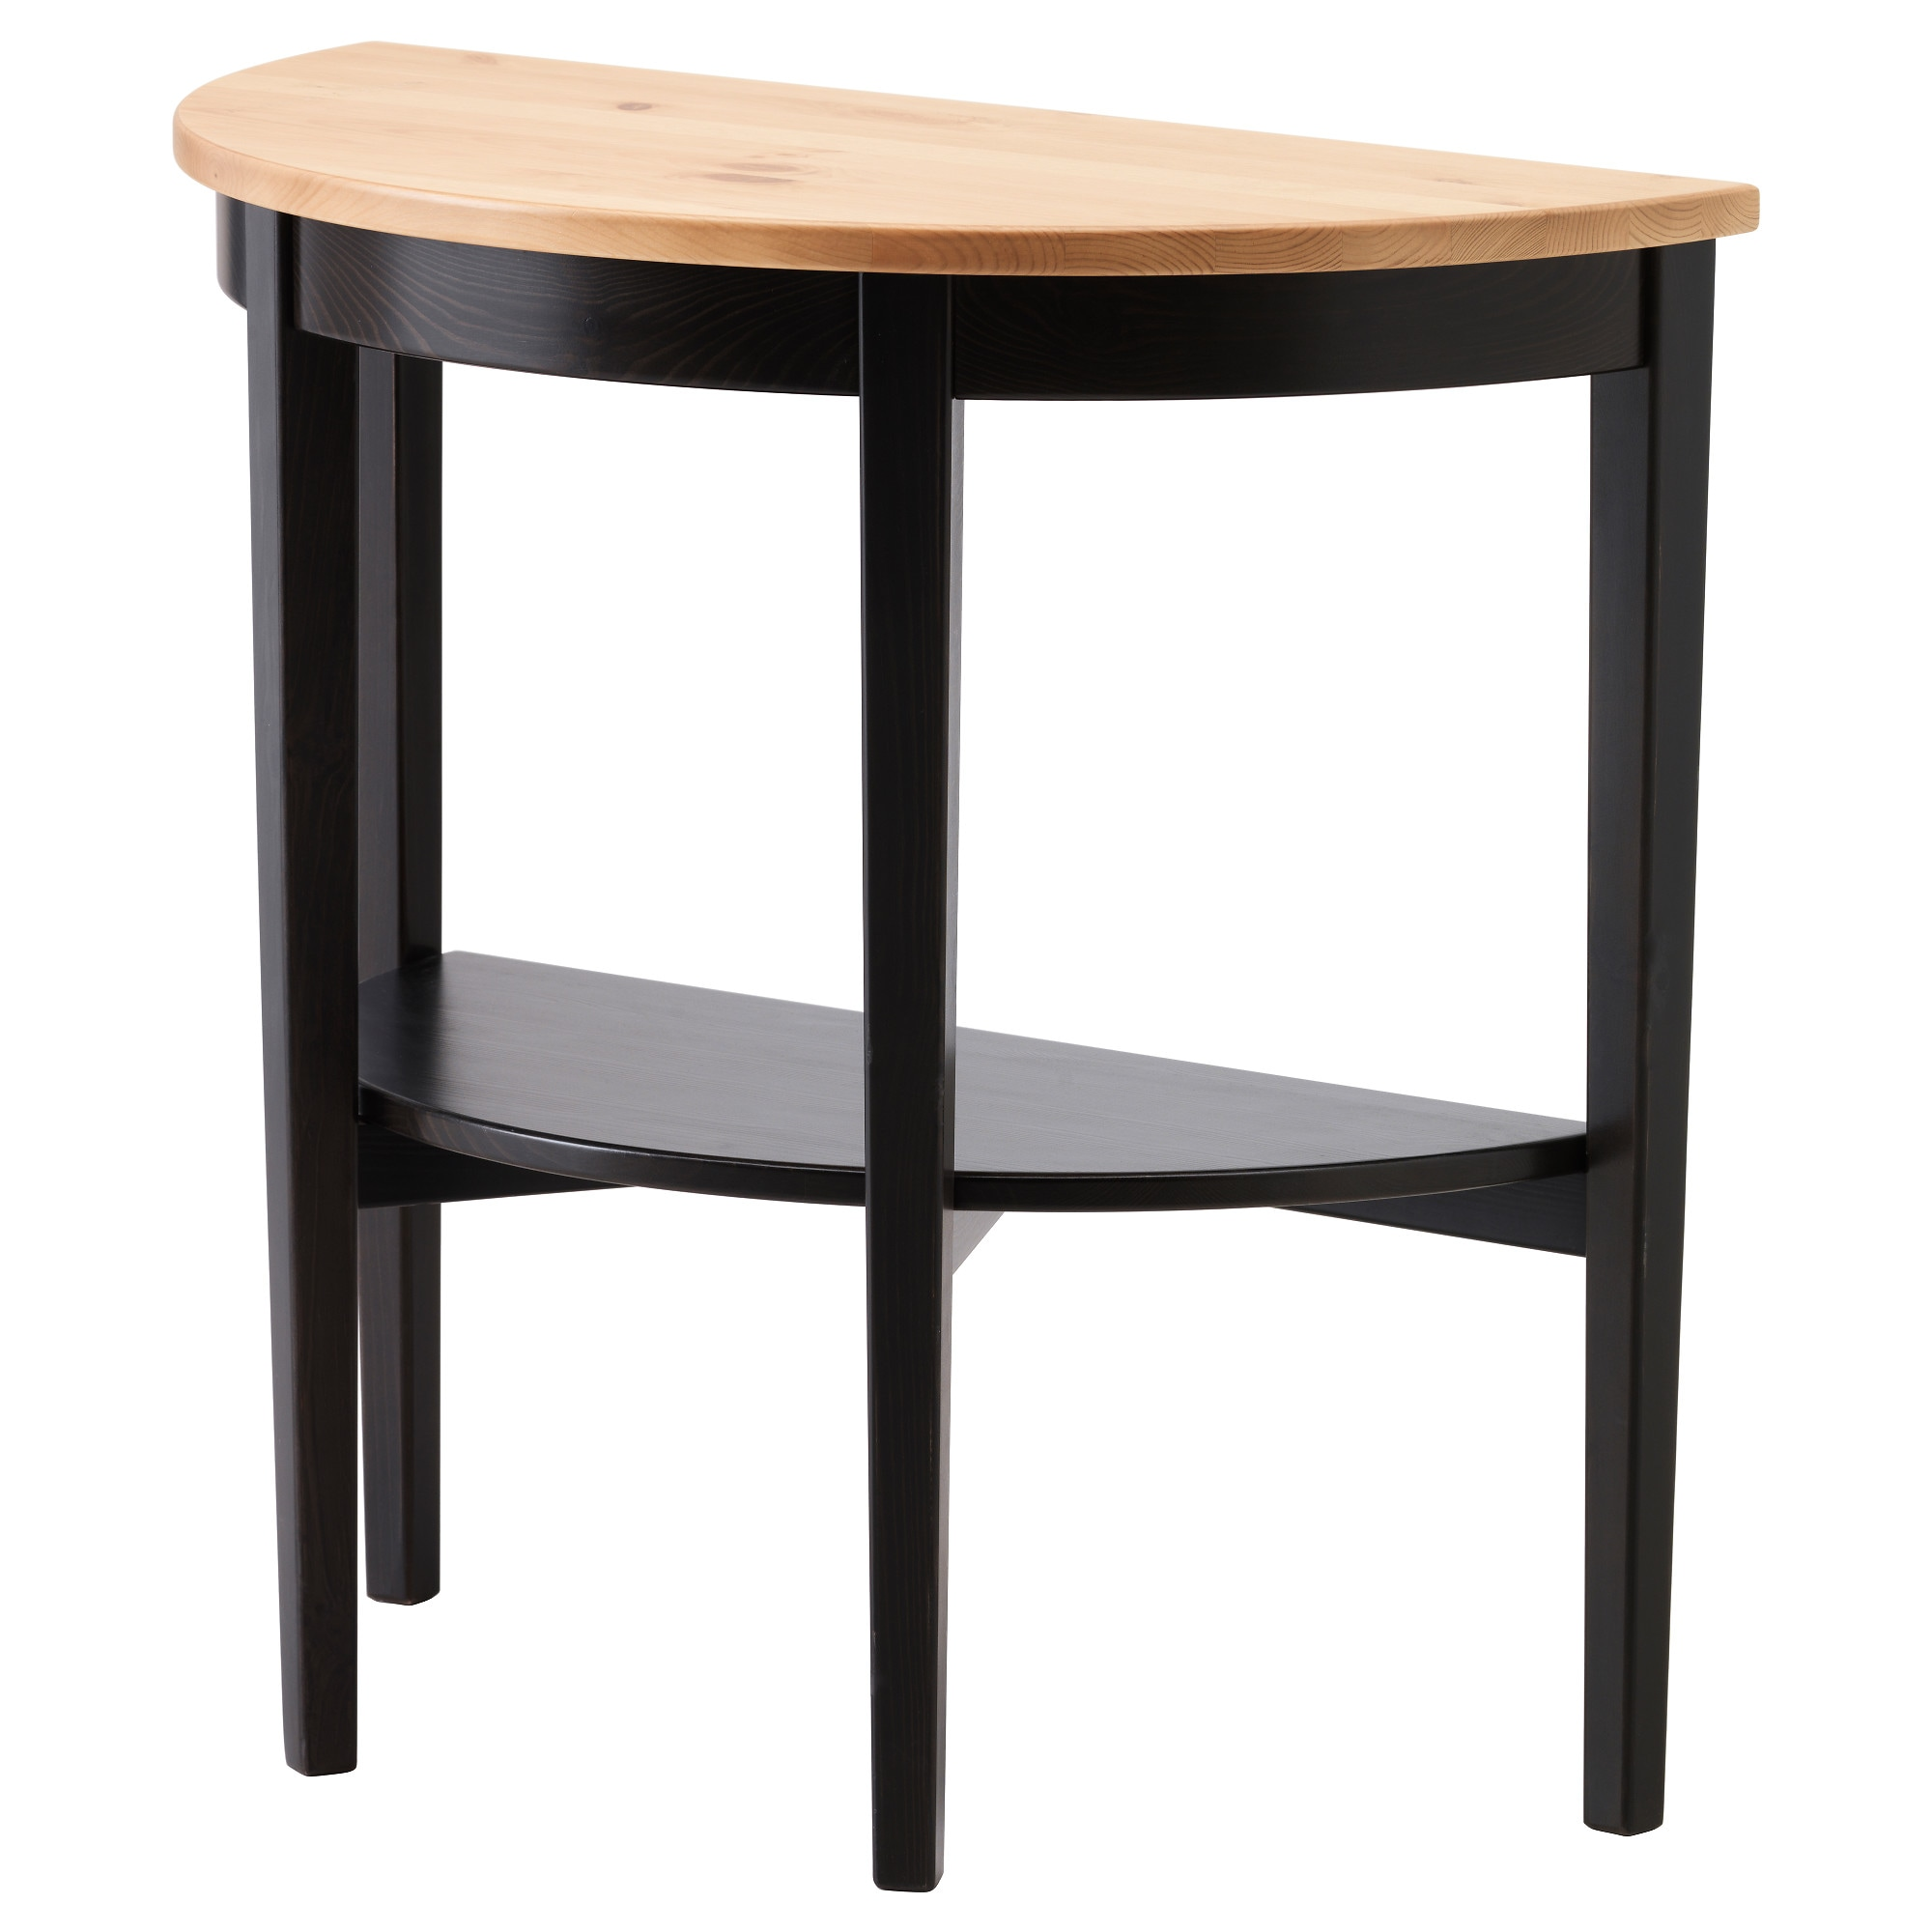 ARKELSTORP Console Table   Black   IKEA